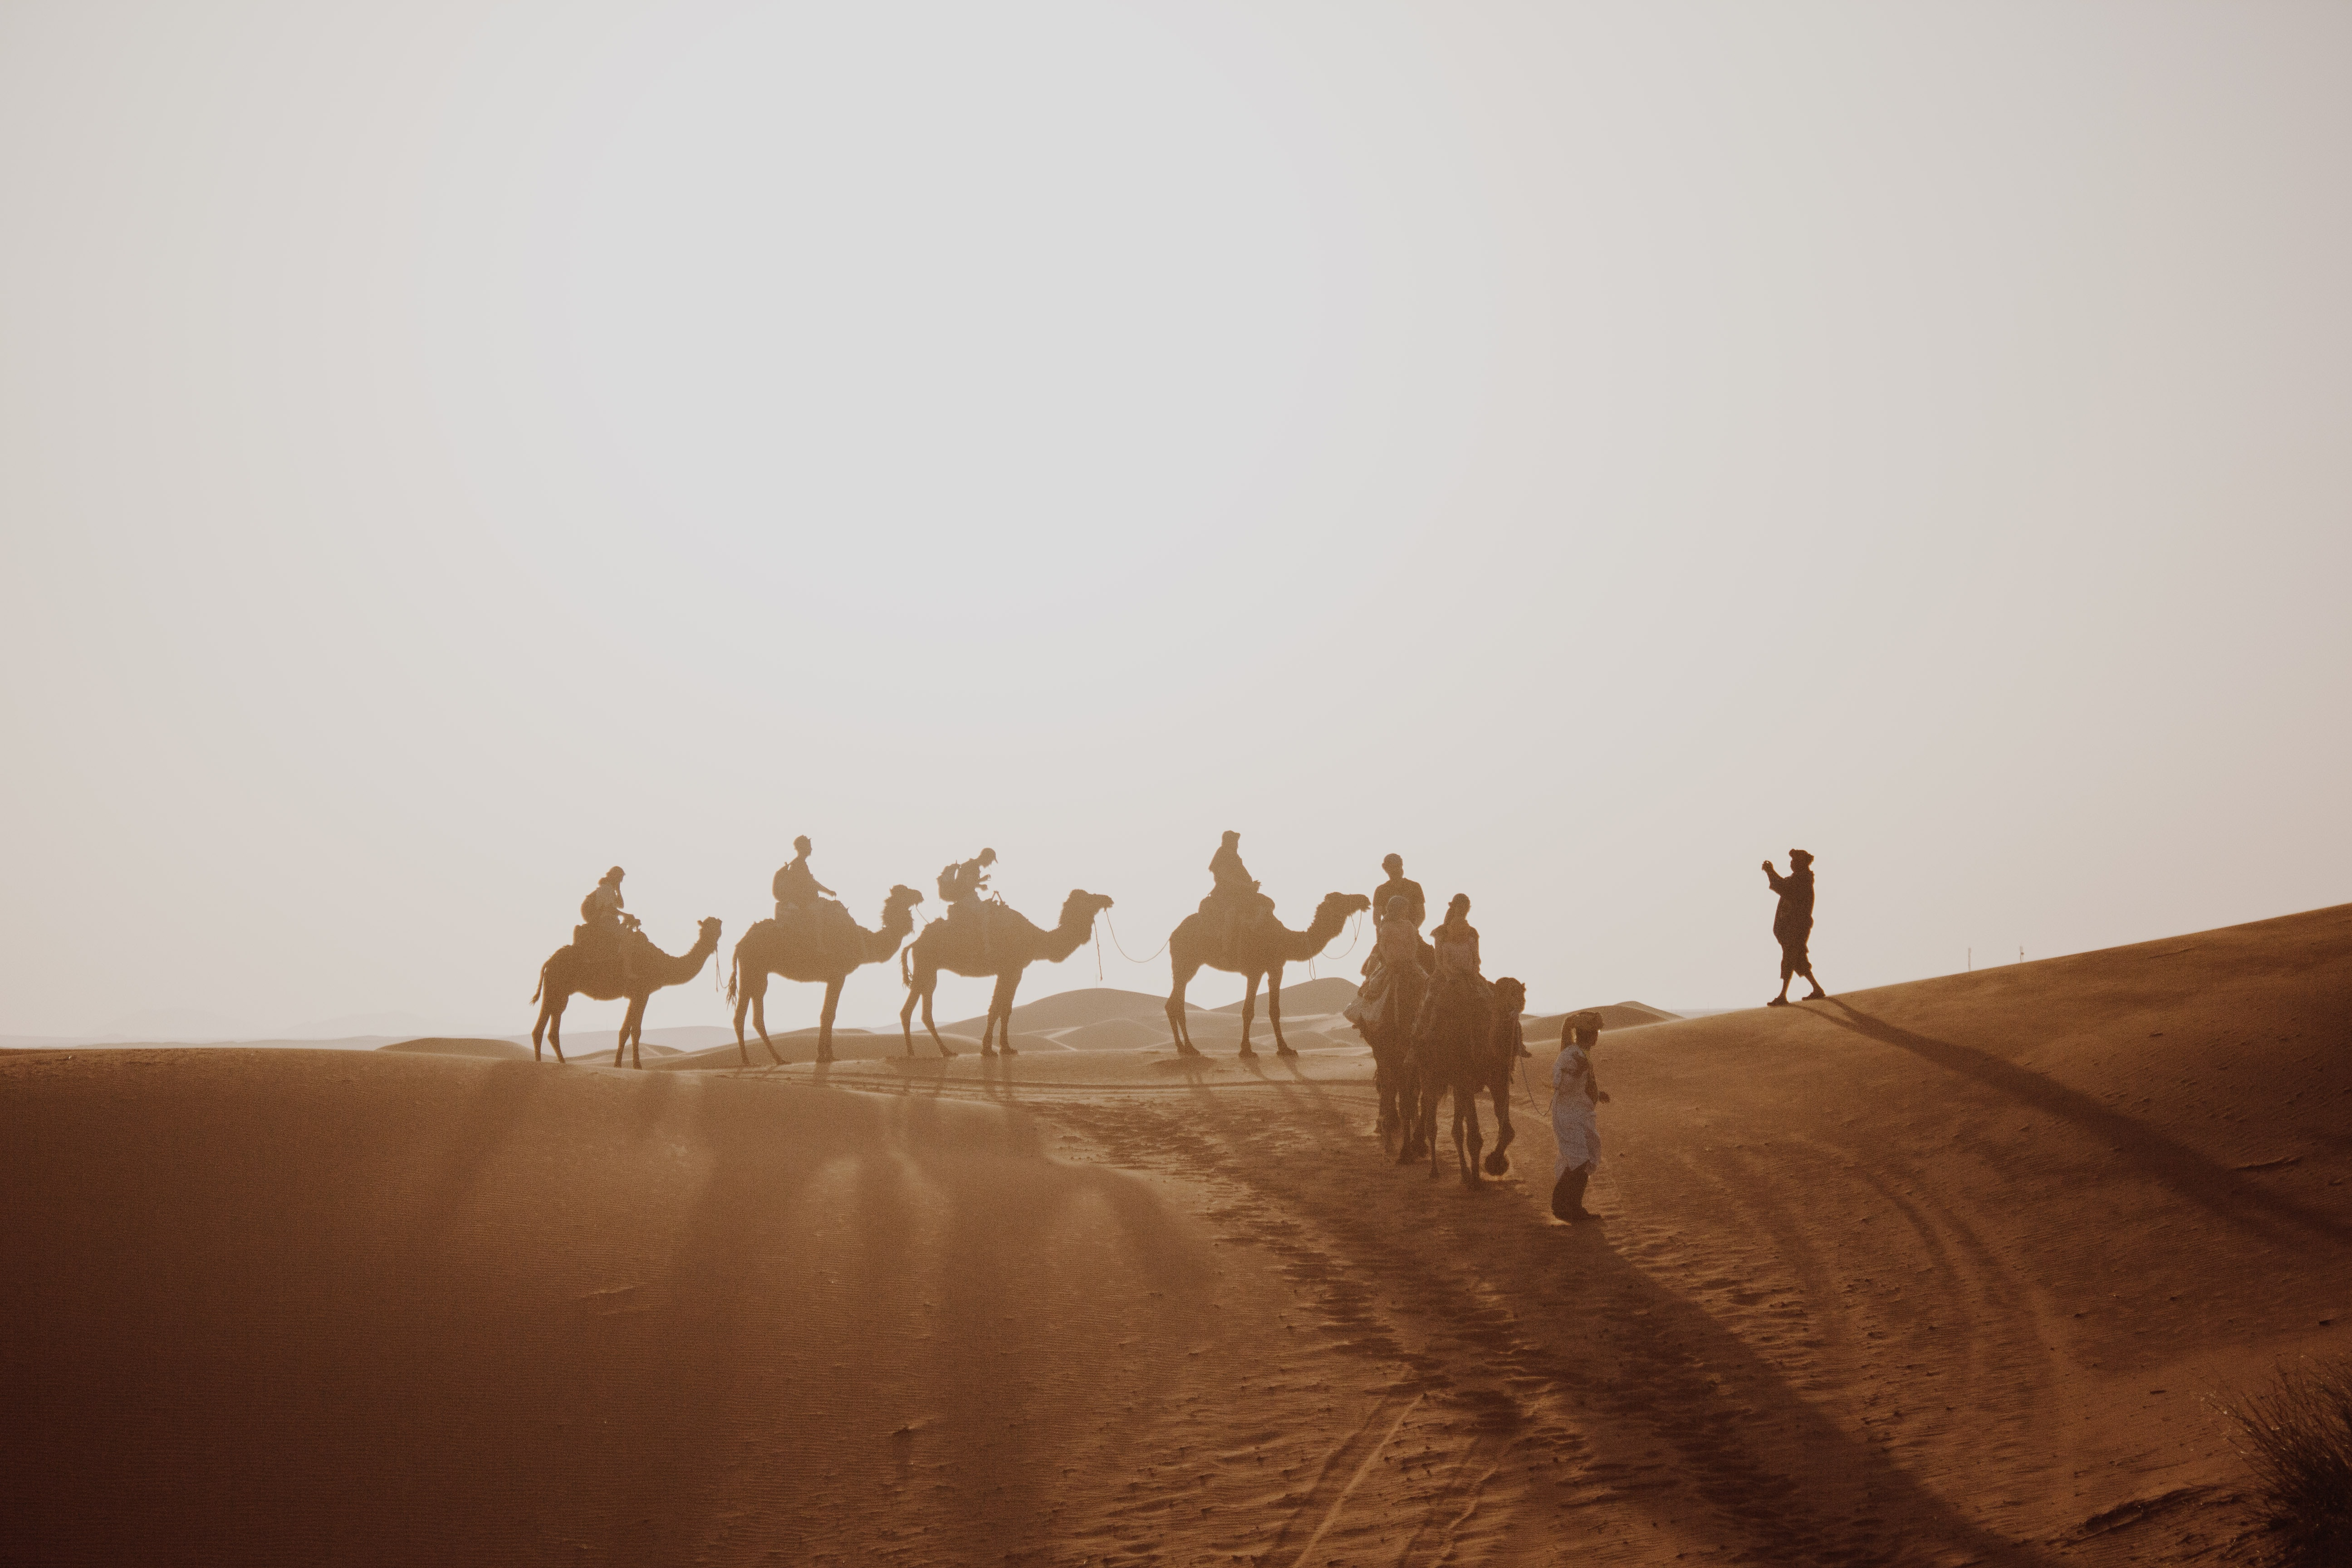 many people riding on camel through the desert field during daytime